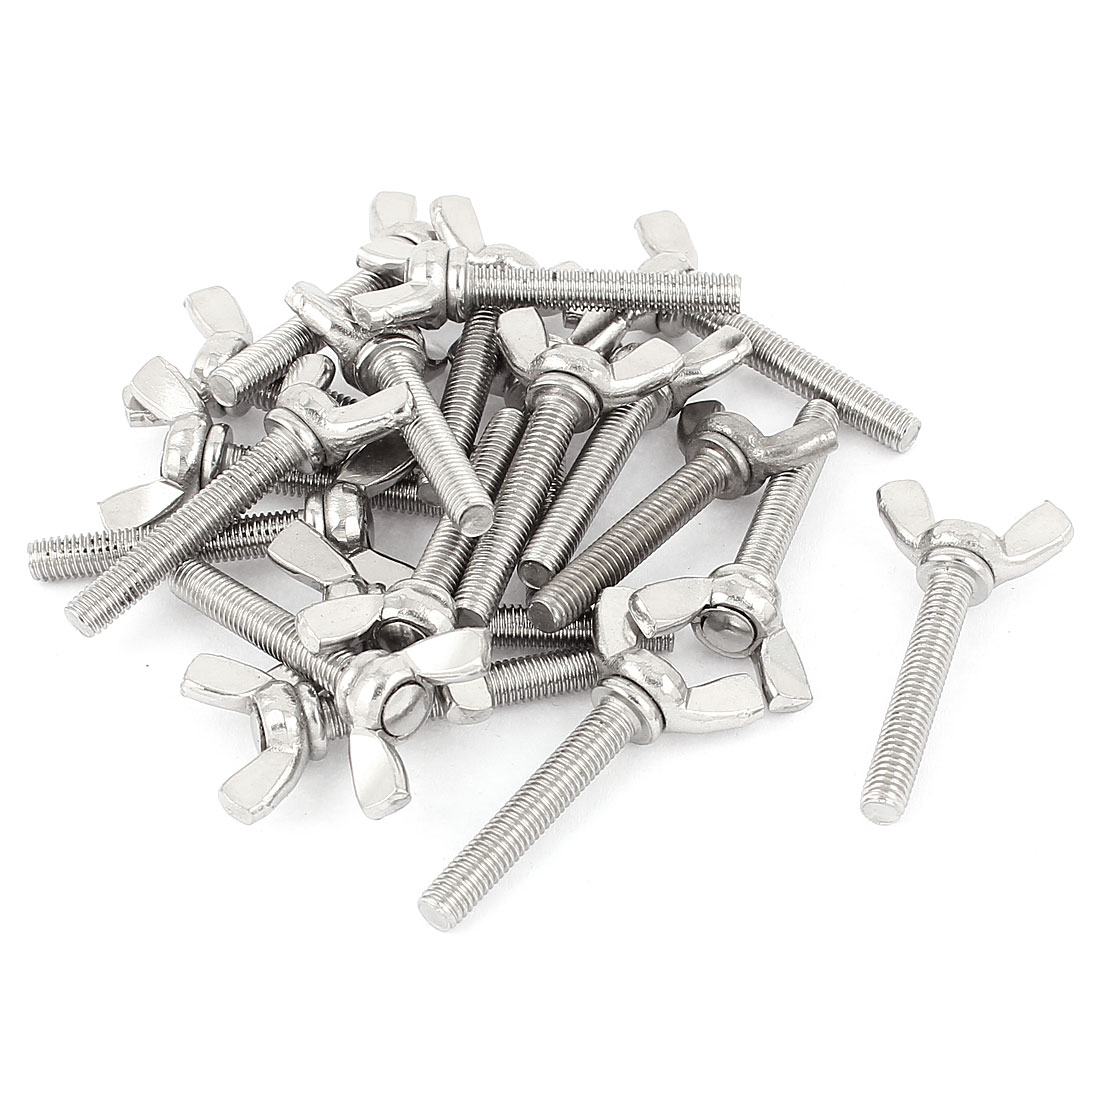 M5x30mm Thread Stainless Steel Wing Bolt Butterfly Screws Fastener 20Pcs